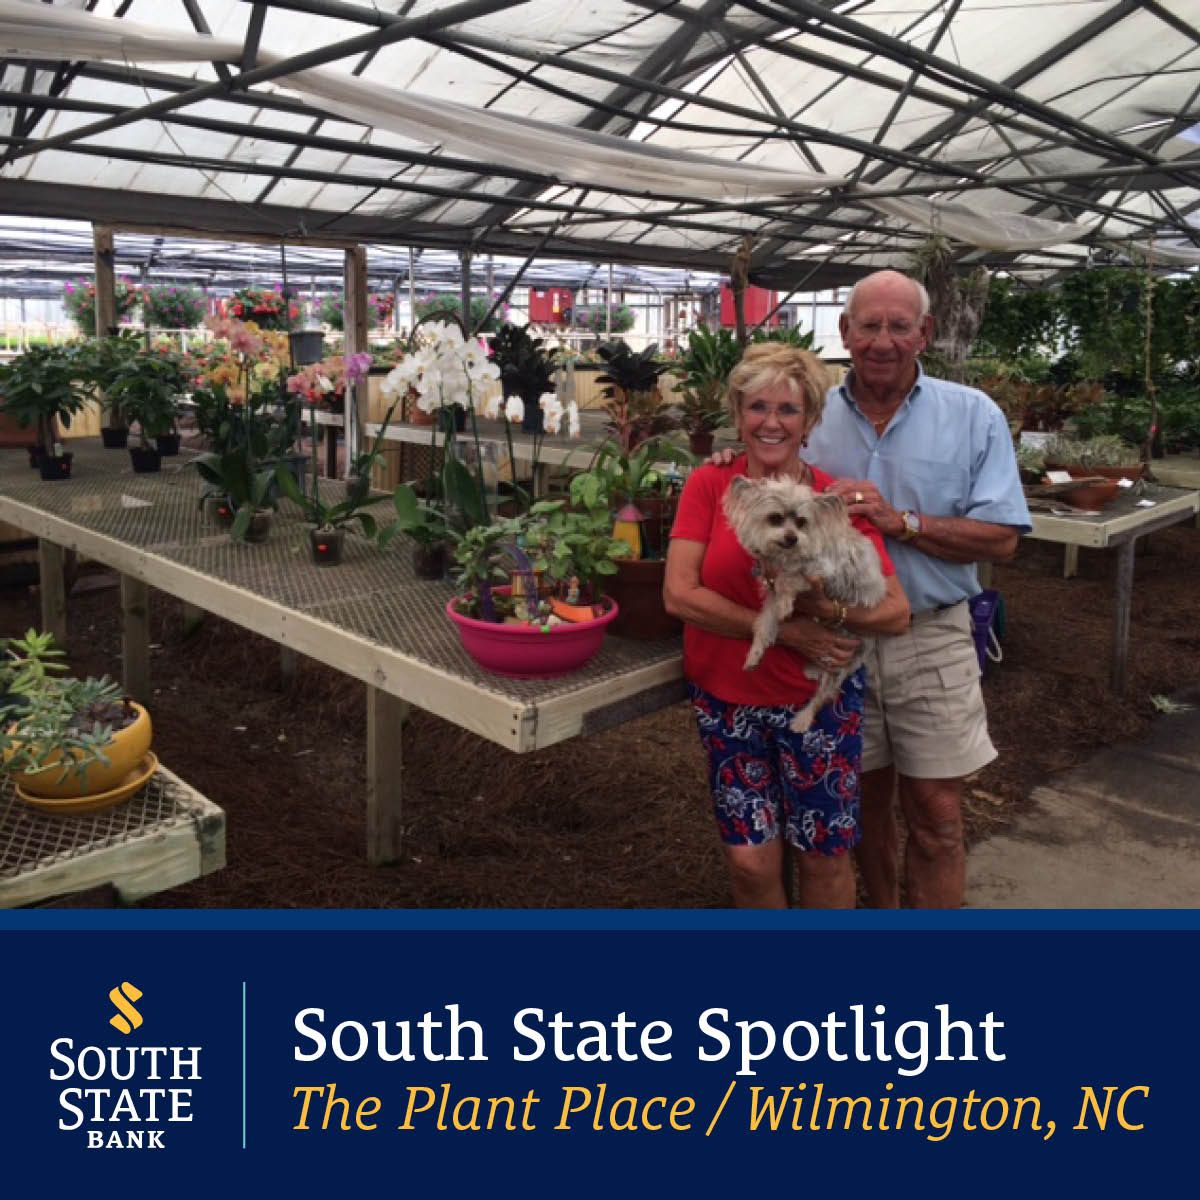 Owners, Bobbie and Billy Edwards agree that working at The Plant Place in Wilmington, NC is not a job… it's a lifestyle. Their employees have been part of the business for years and know customers by name, providing a warm welcome to all customers. 32 greenhouses of plants grown on the property and the advice from the knowledgeable staff are only the beginning. Customers can walk the aisles of all the greenhouses with wagons and select from the best plants in town.